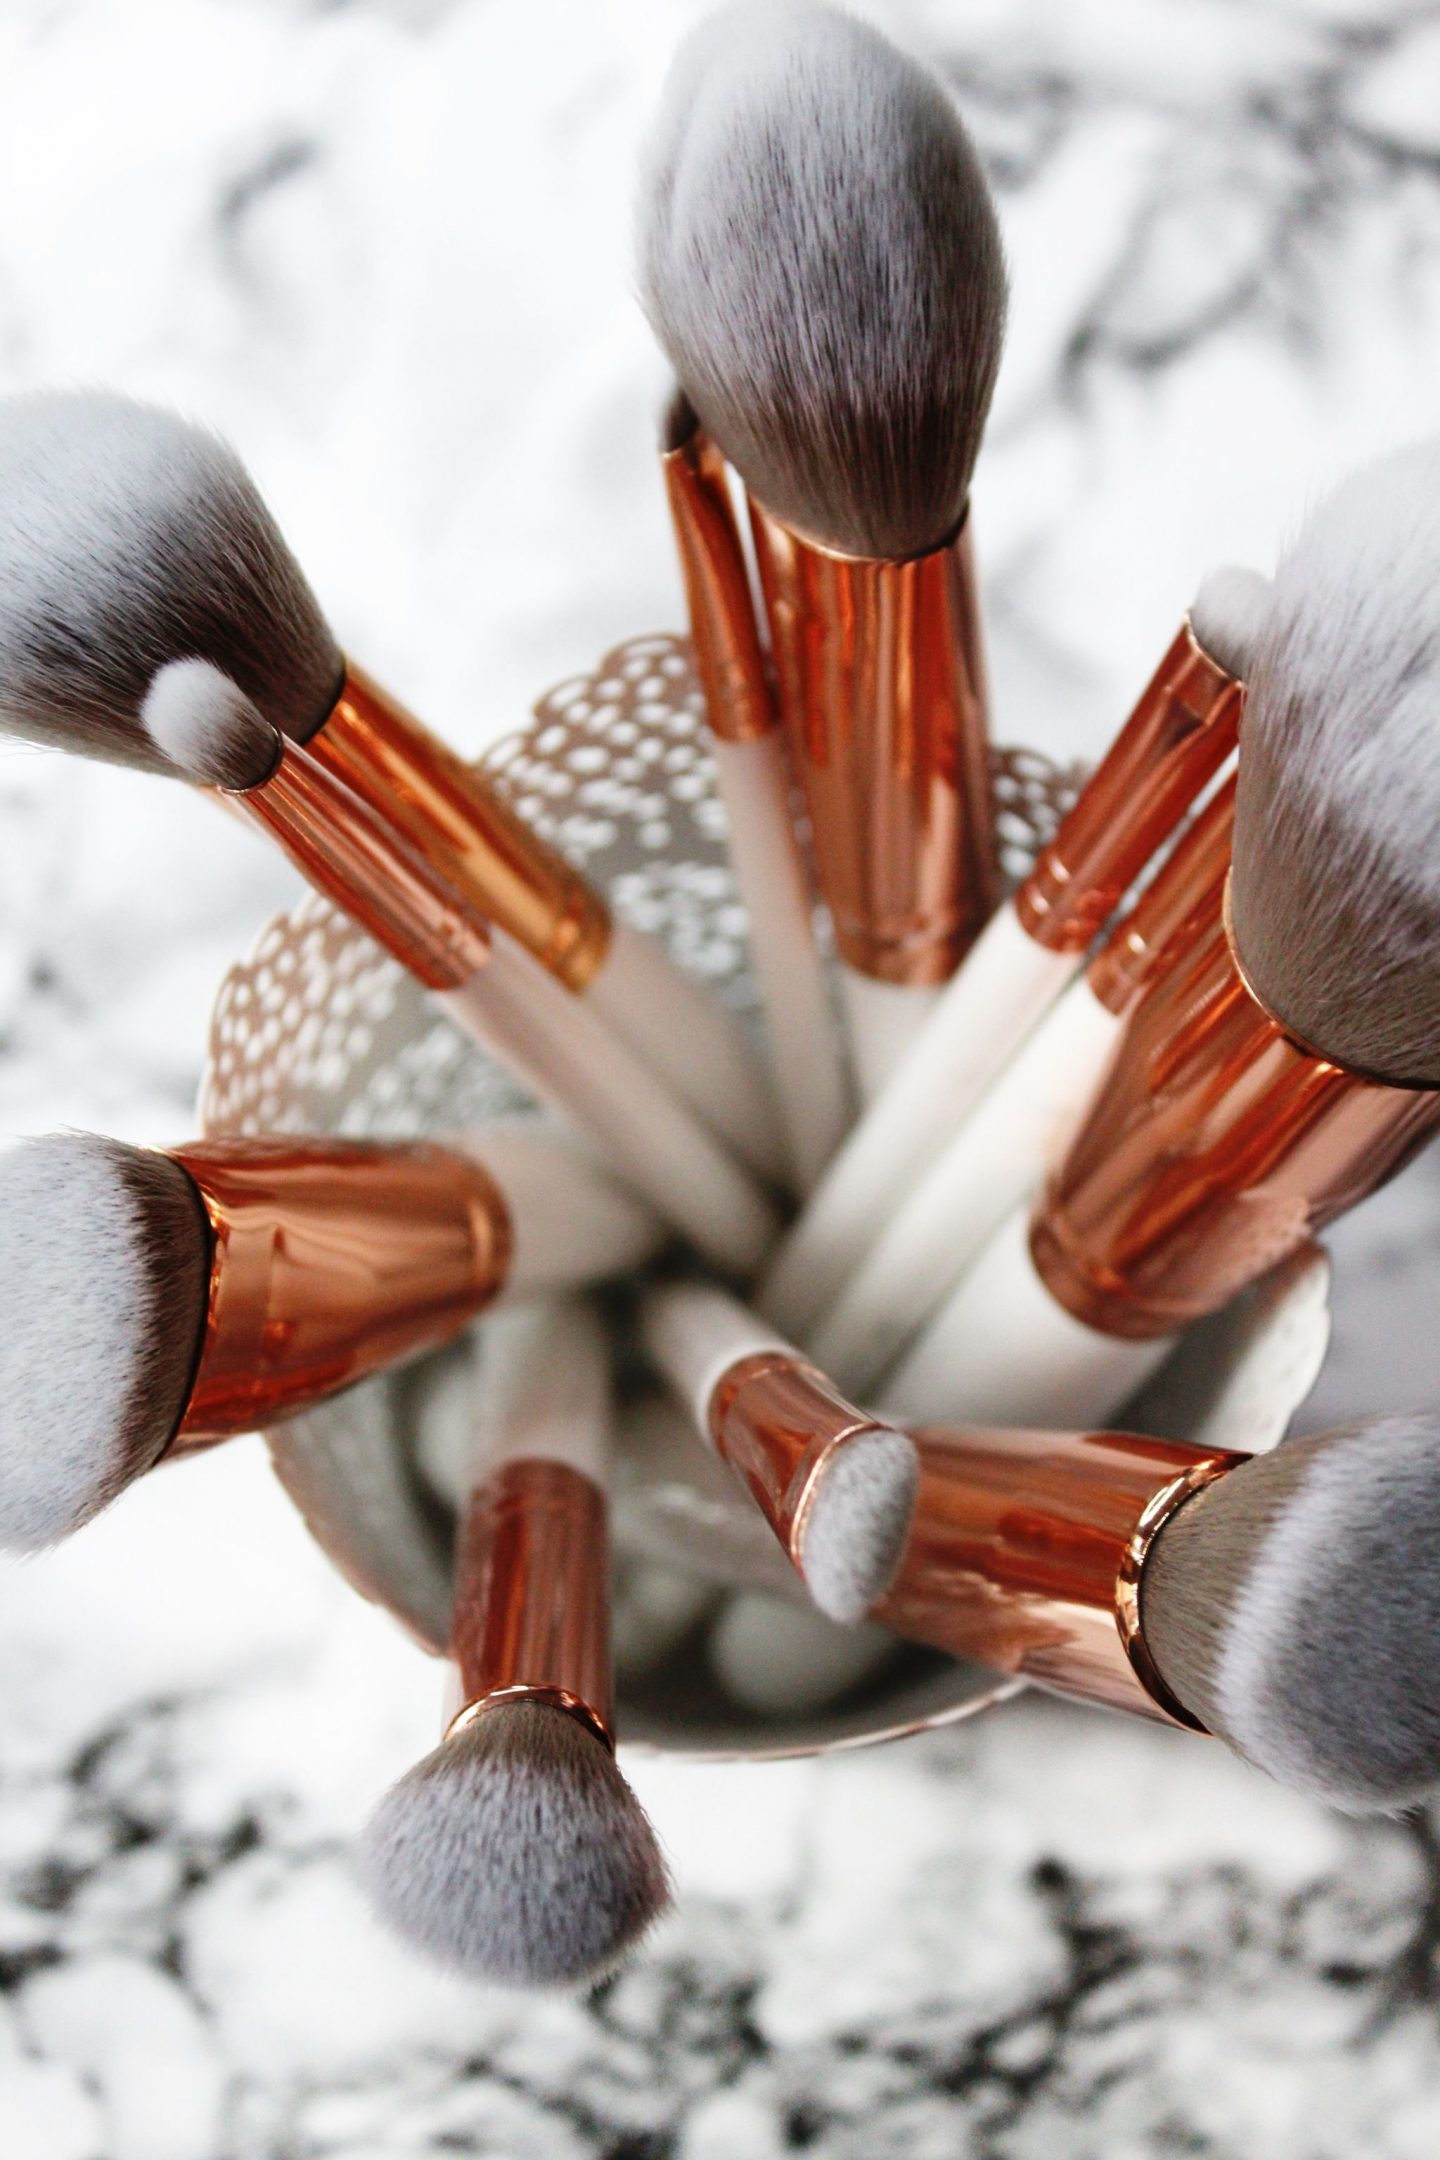 Spectrum Collections Brushes | Marbleous 12 Piece Set Review - Miel and Mint